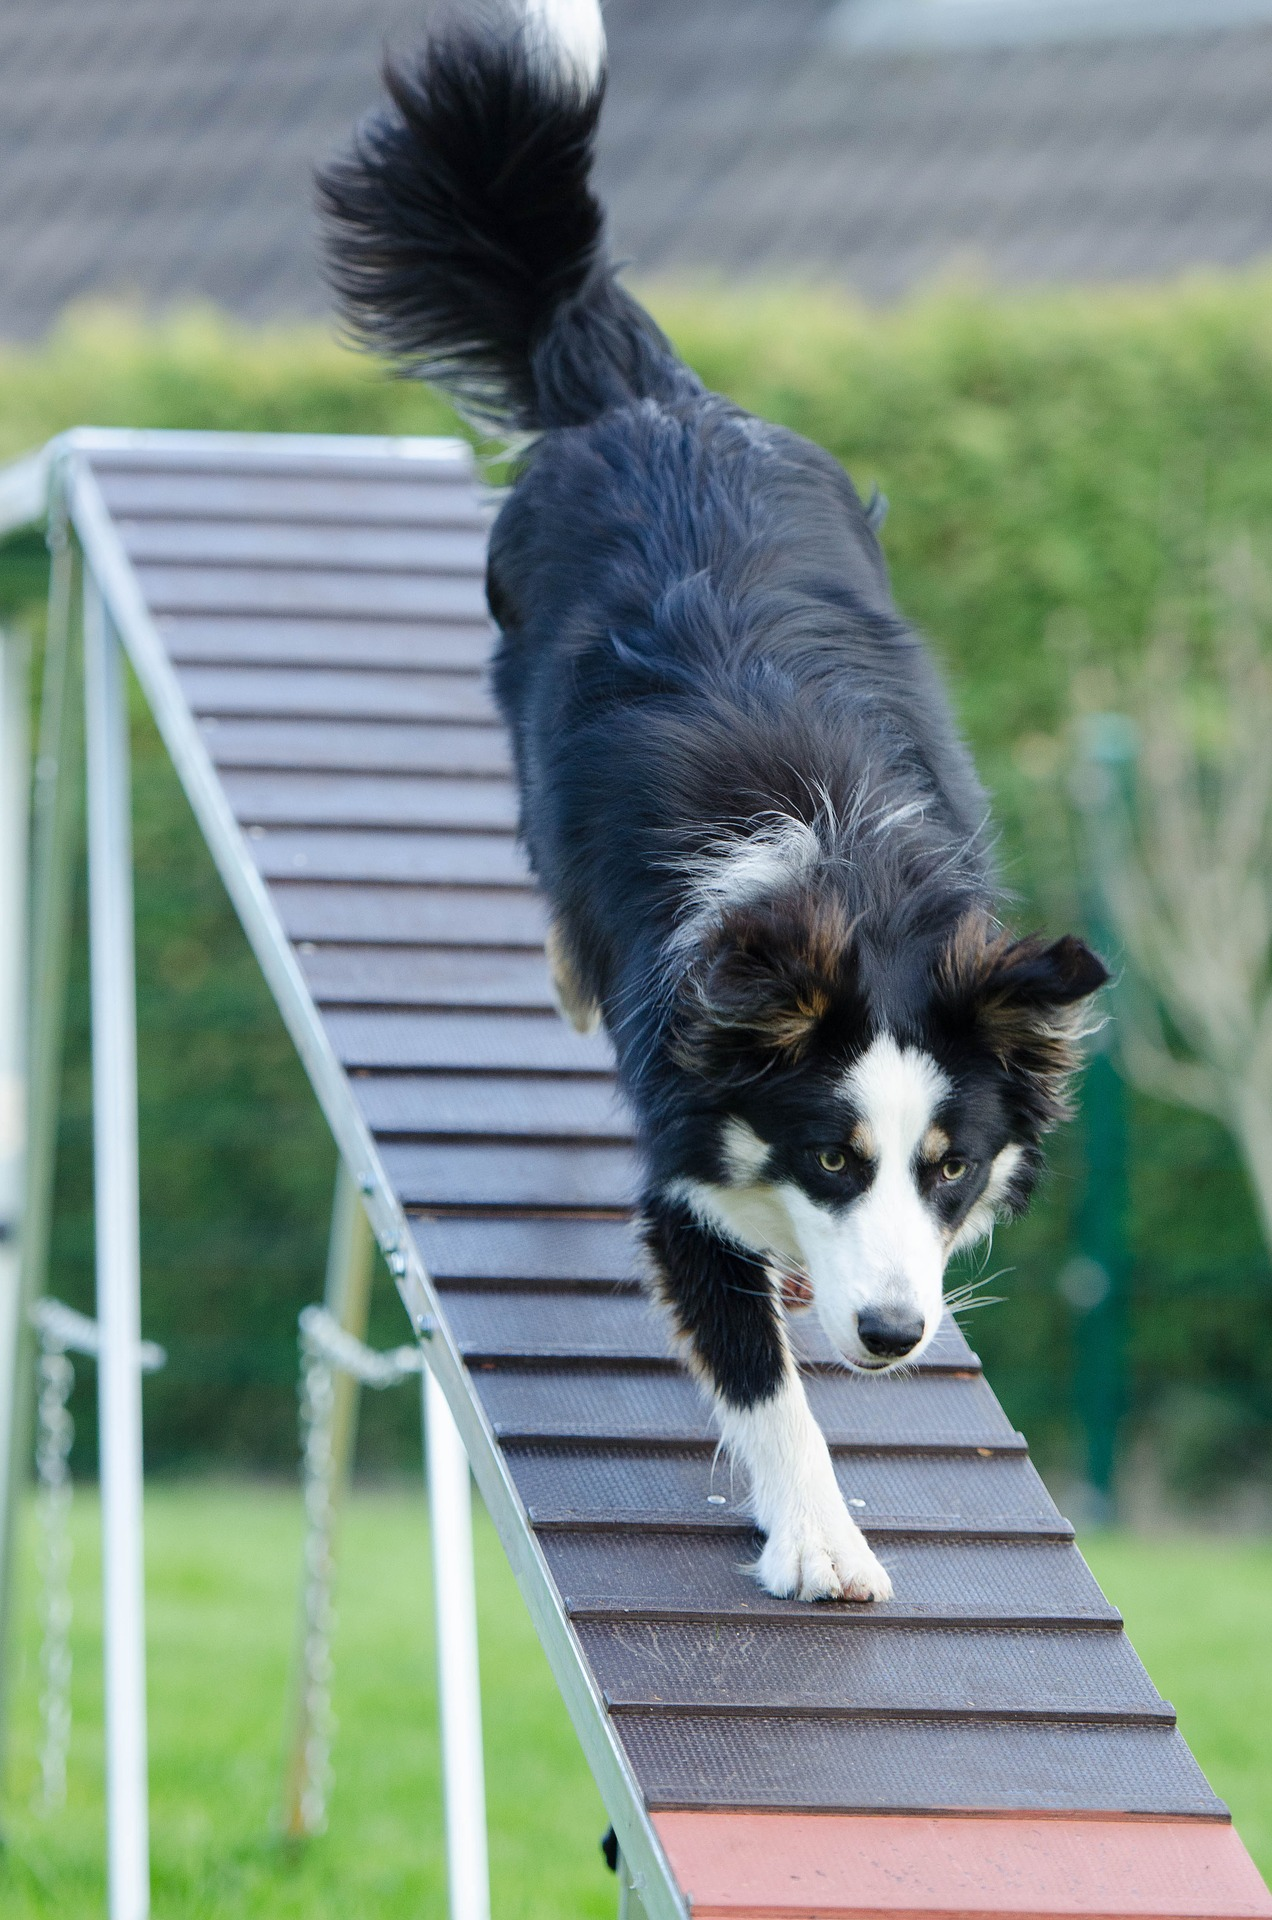 Contact obstacles like this dog walk are a fun challenge for dogs!